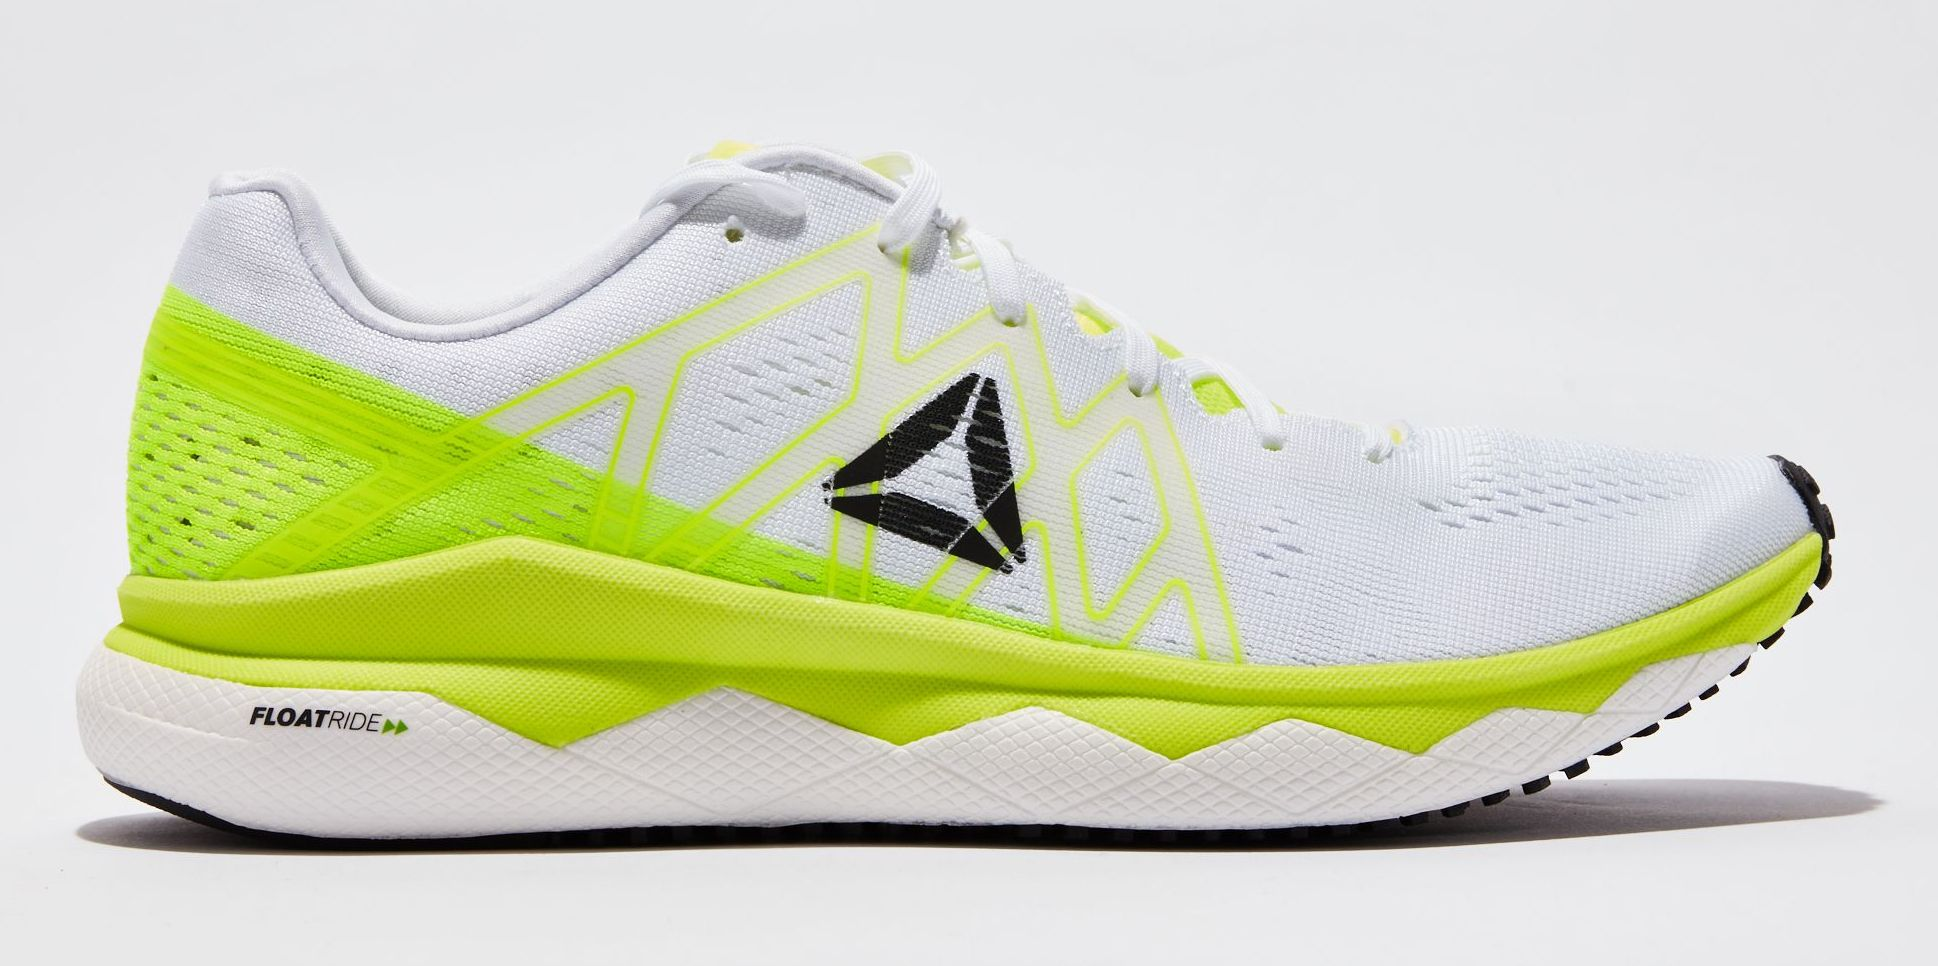 c3becfc421106 Reebok Running Shoes 2019